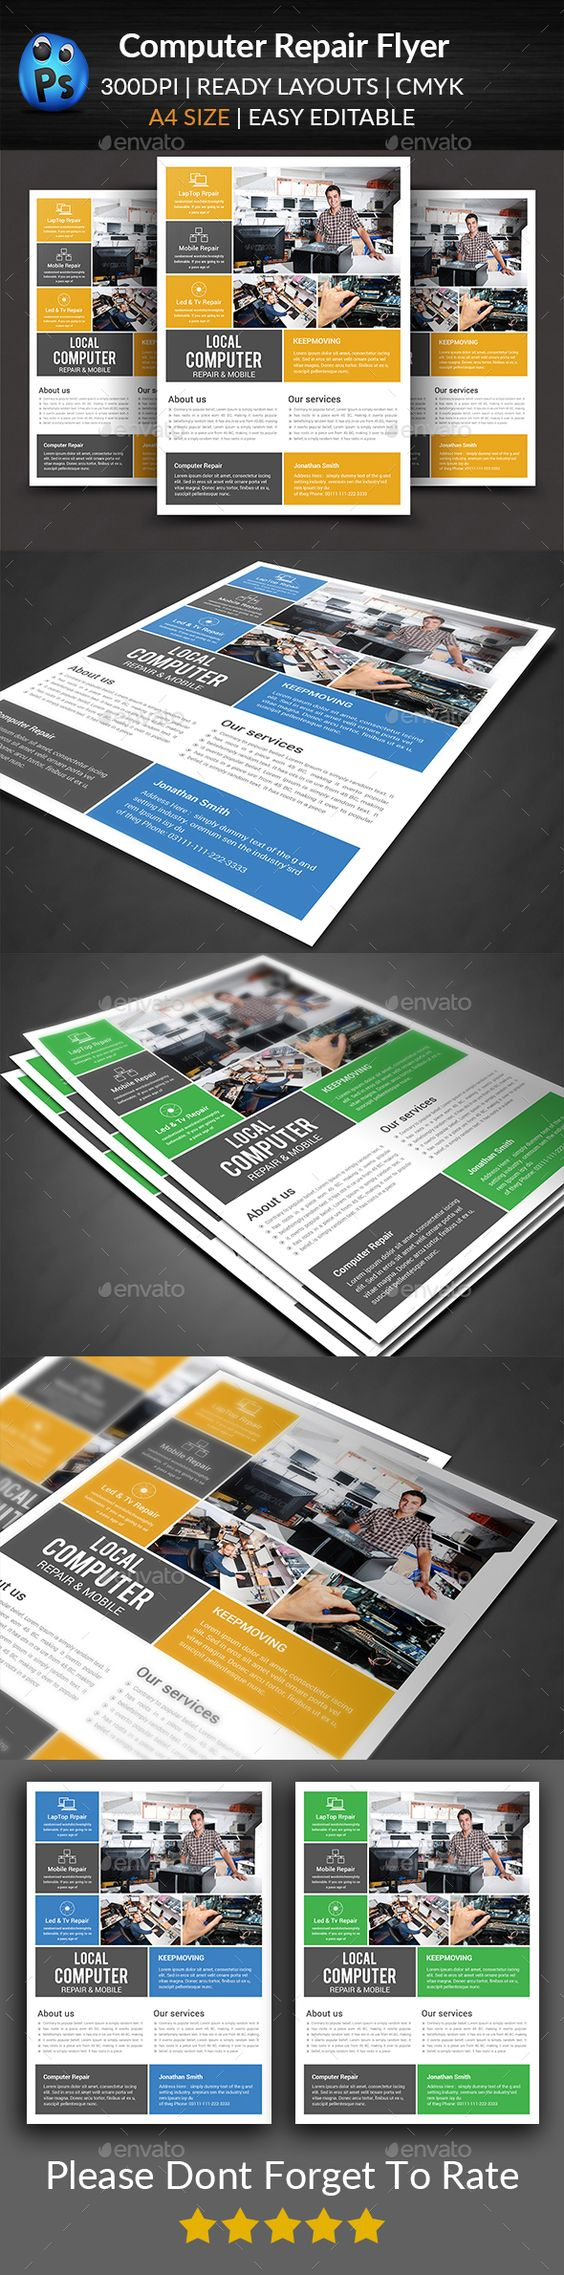 Computer & Mobile Repair Flyer | Pinterest | Flyer template ...